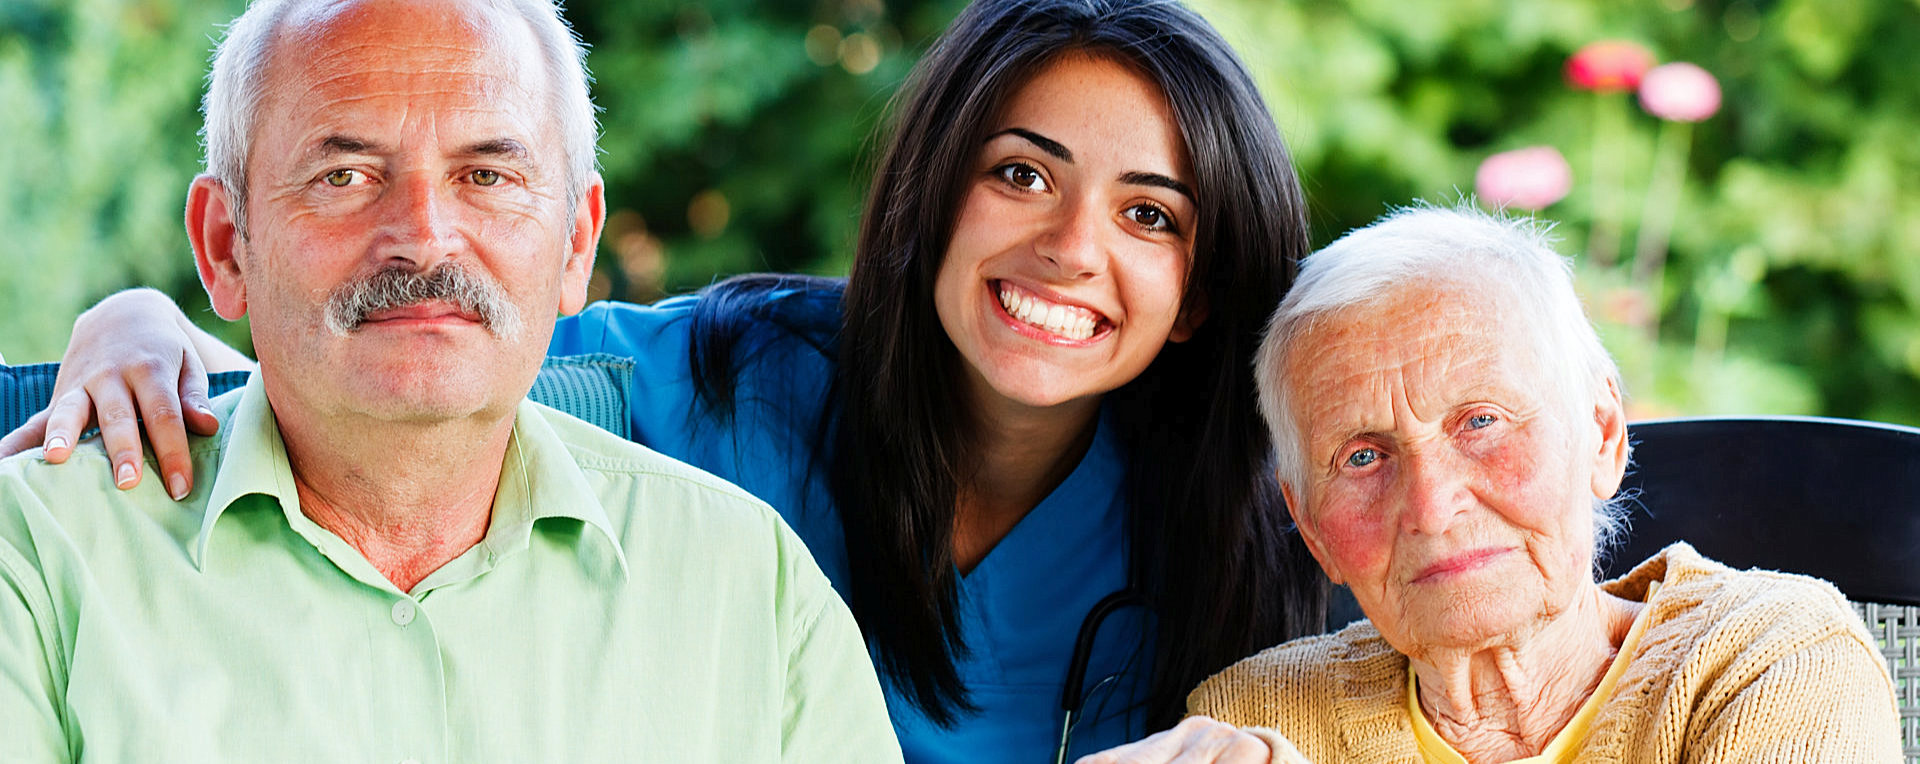 Smiling caregiver and elderly couple